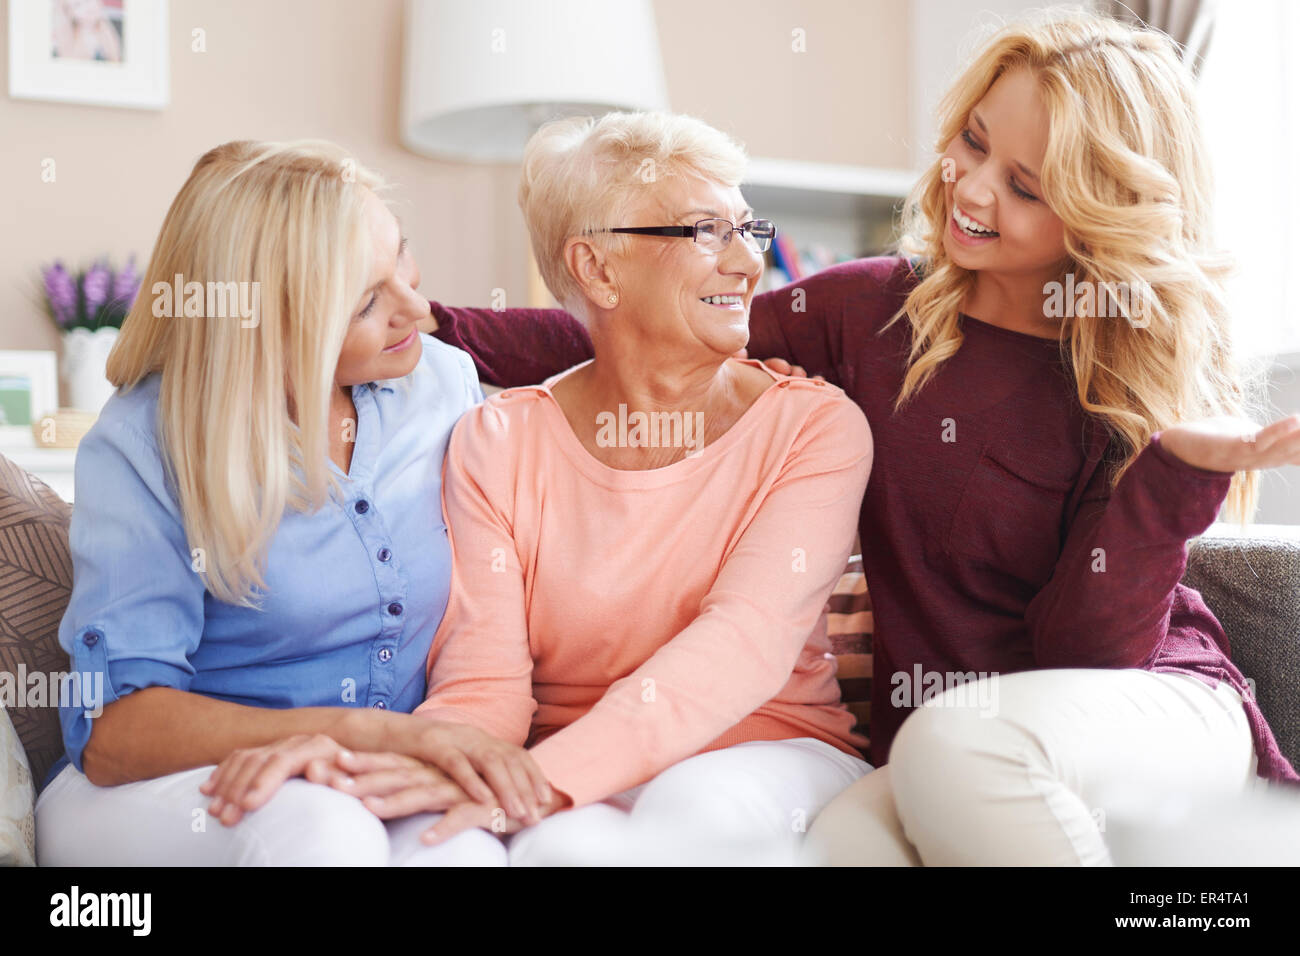 Spending quality time with family. Debica, Poland - Stock Image